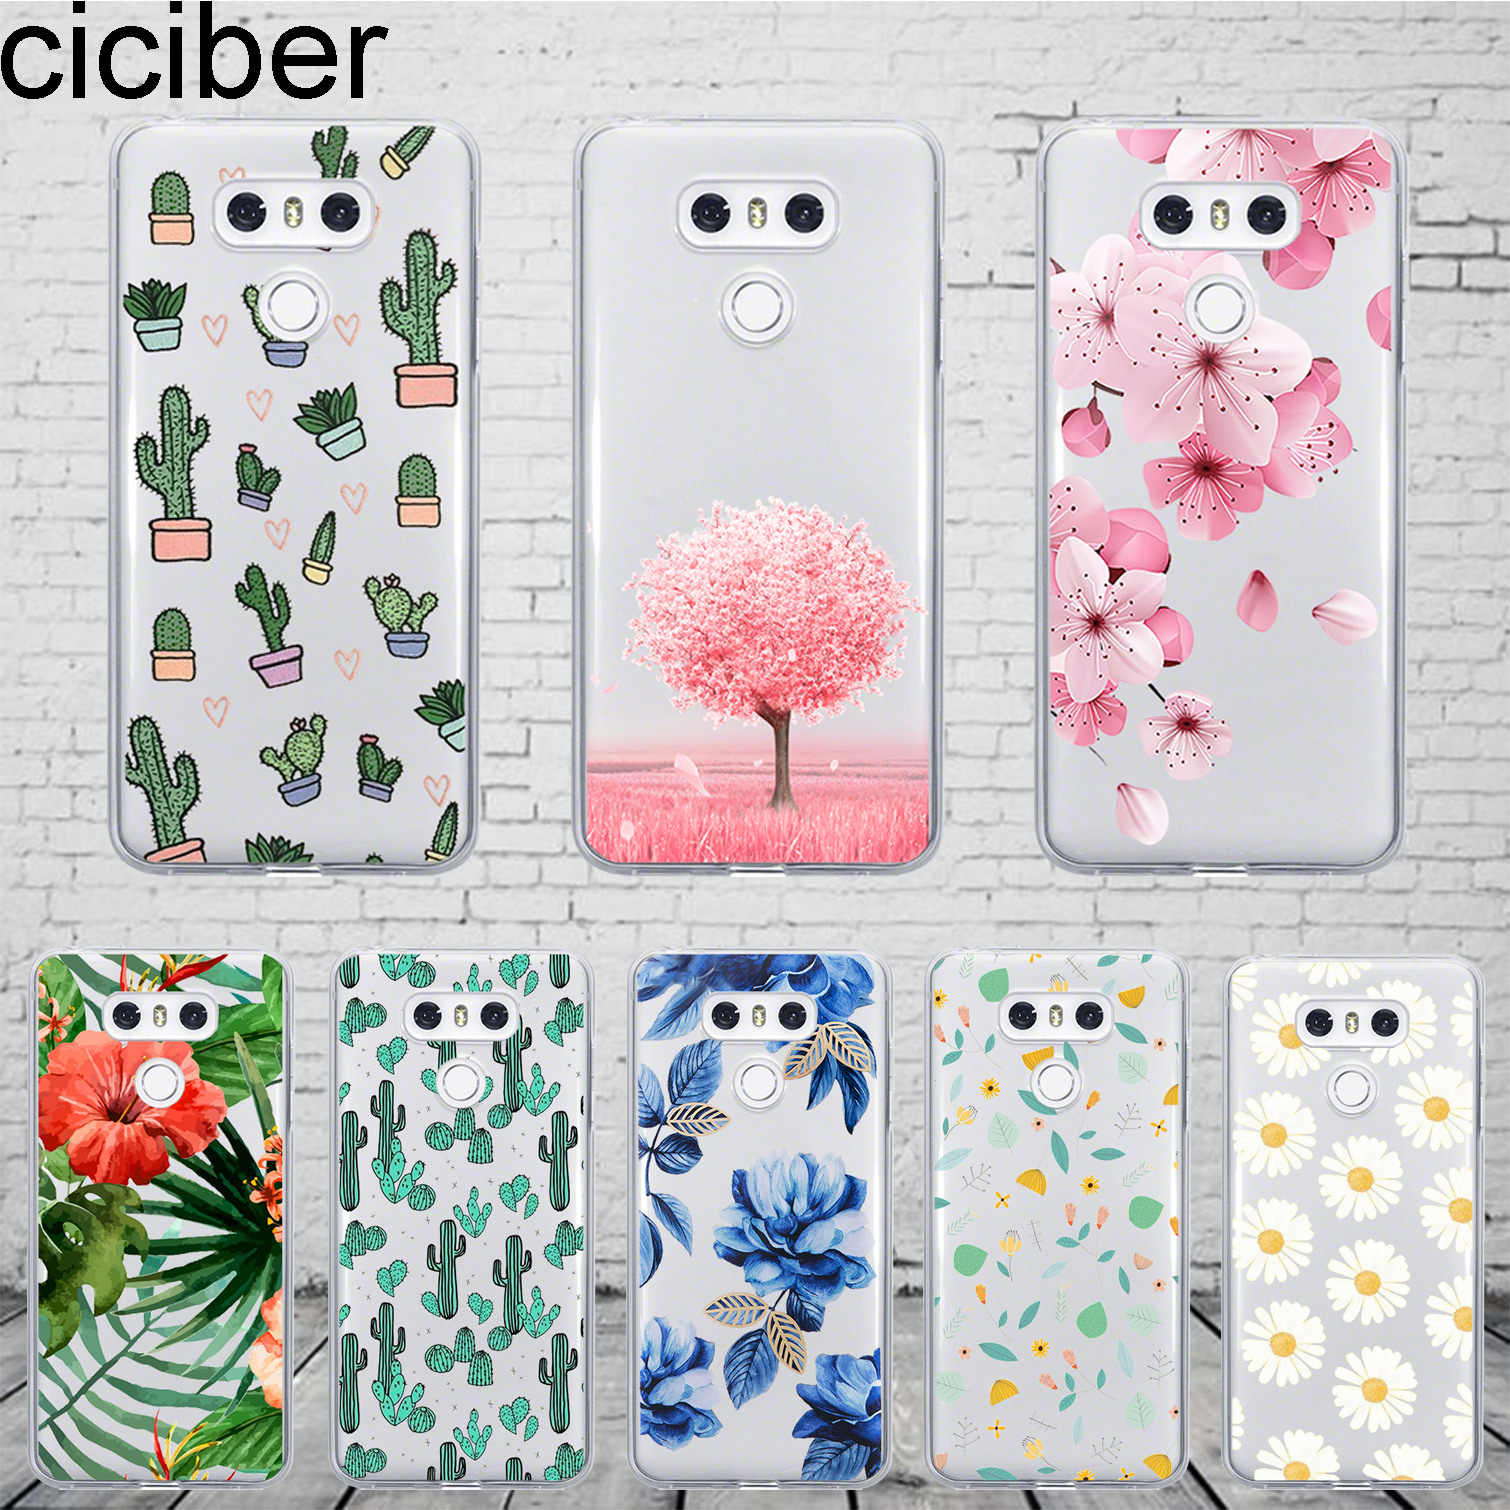 Ciciber Plants Cactus For LG G7 G6 G5 G4 V40 V35 V30 V20 ThinQ Phone Case Silicone TPU For LG K8 K10 K4 2017 2018 K9 K11 Plus